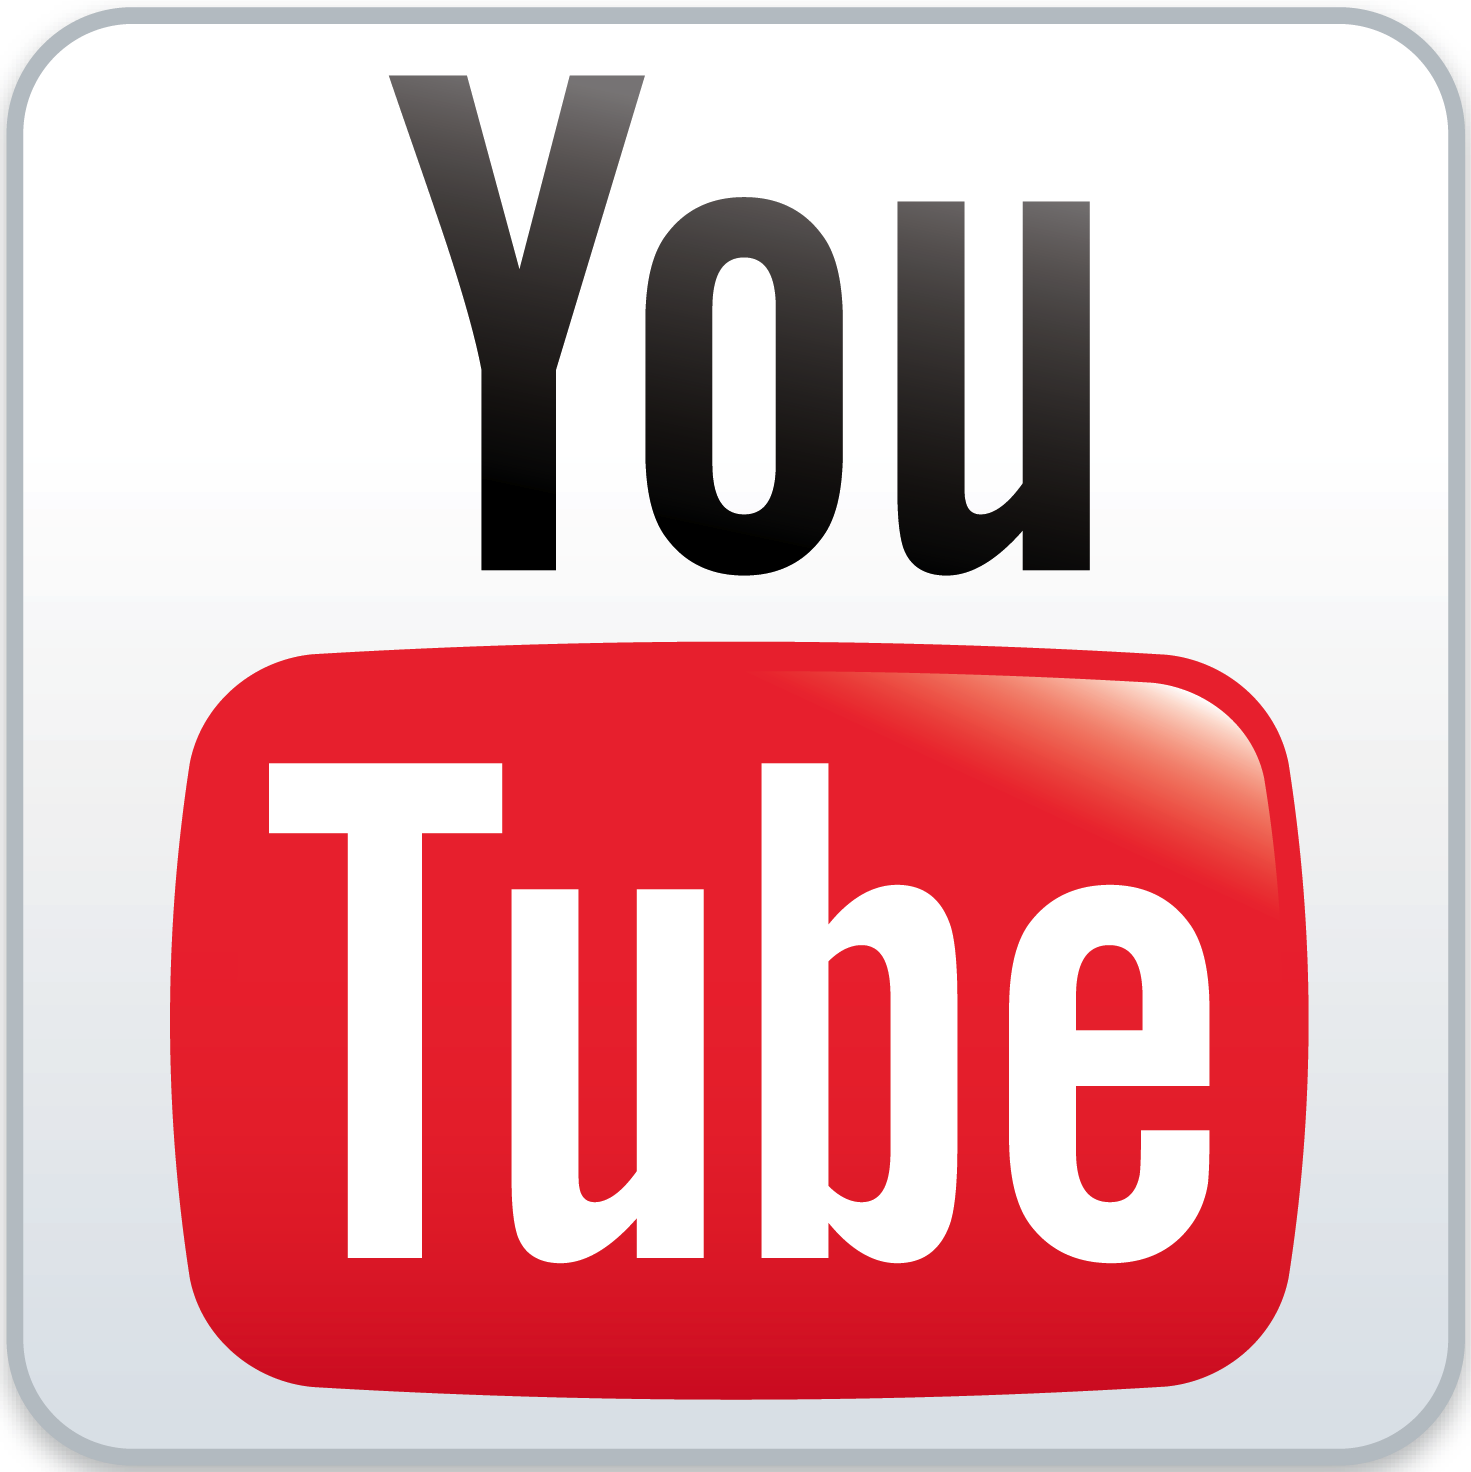 Our videos on Youtube